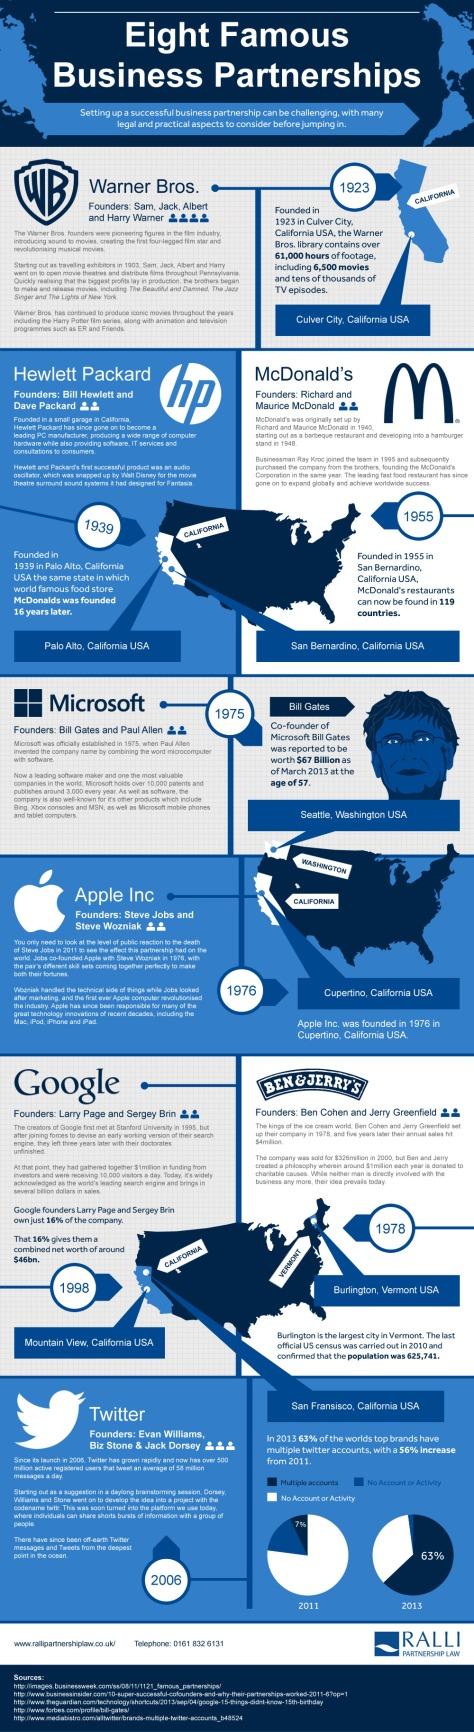 8-famous-business-partnerships-that-really-worked_5264f869c0bdf